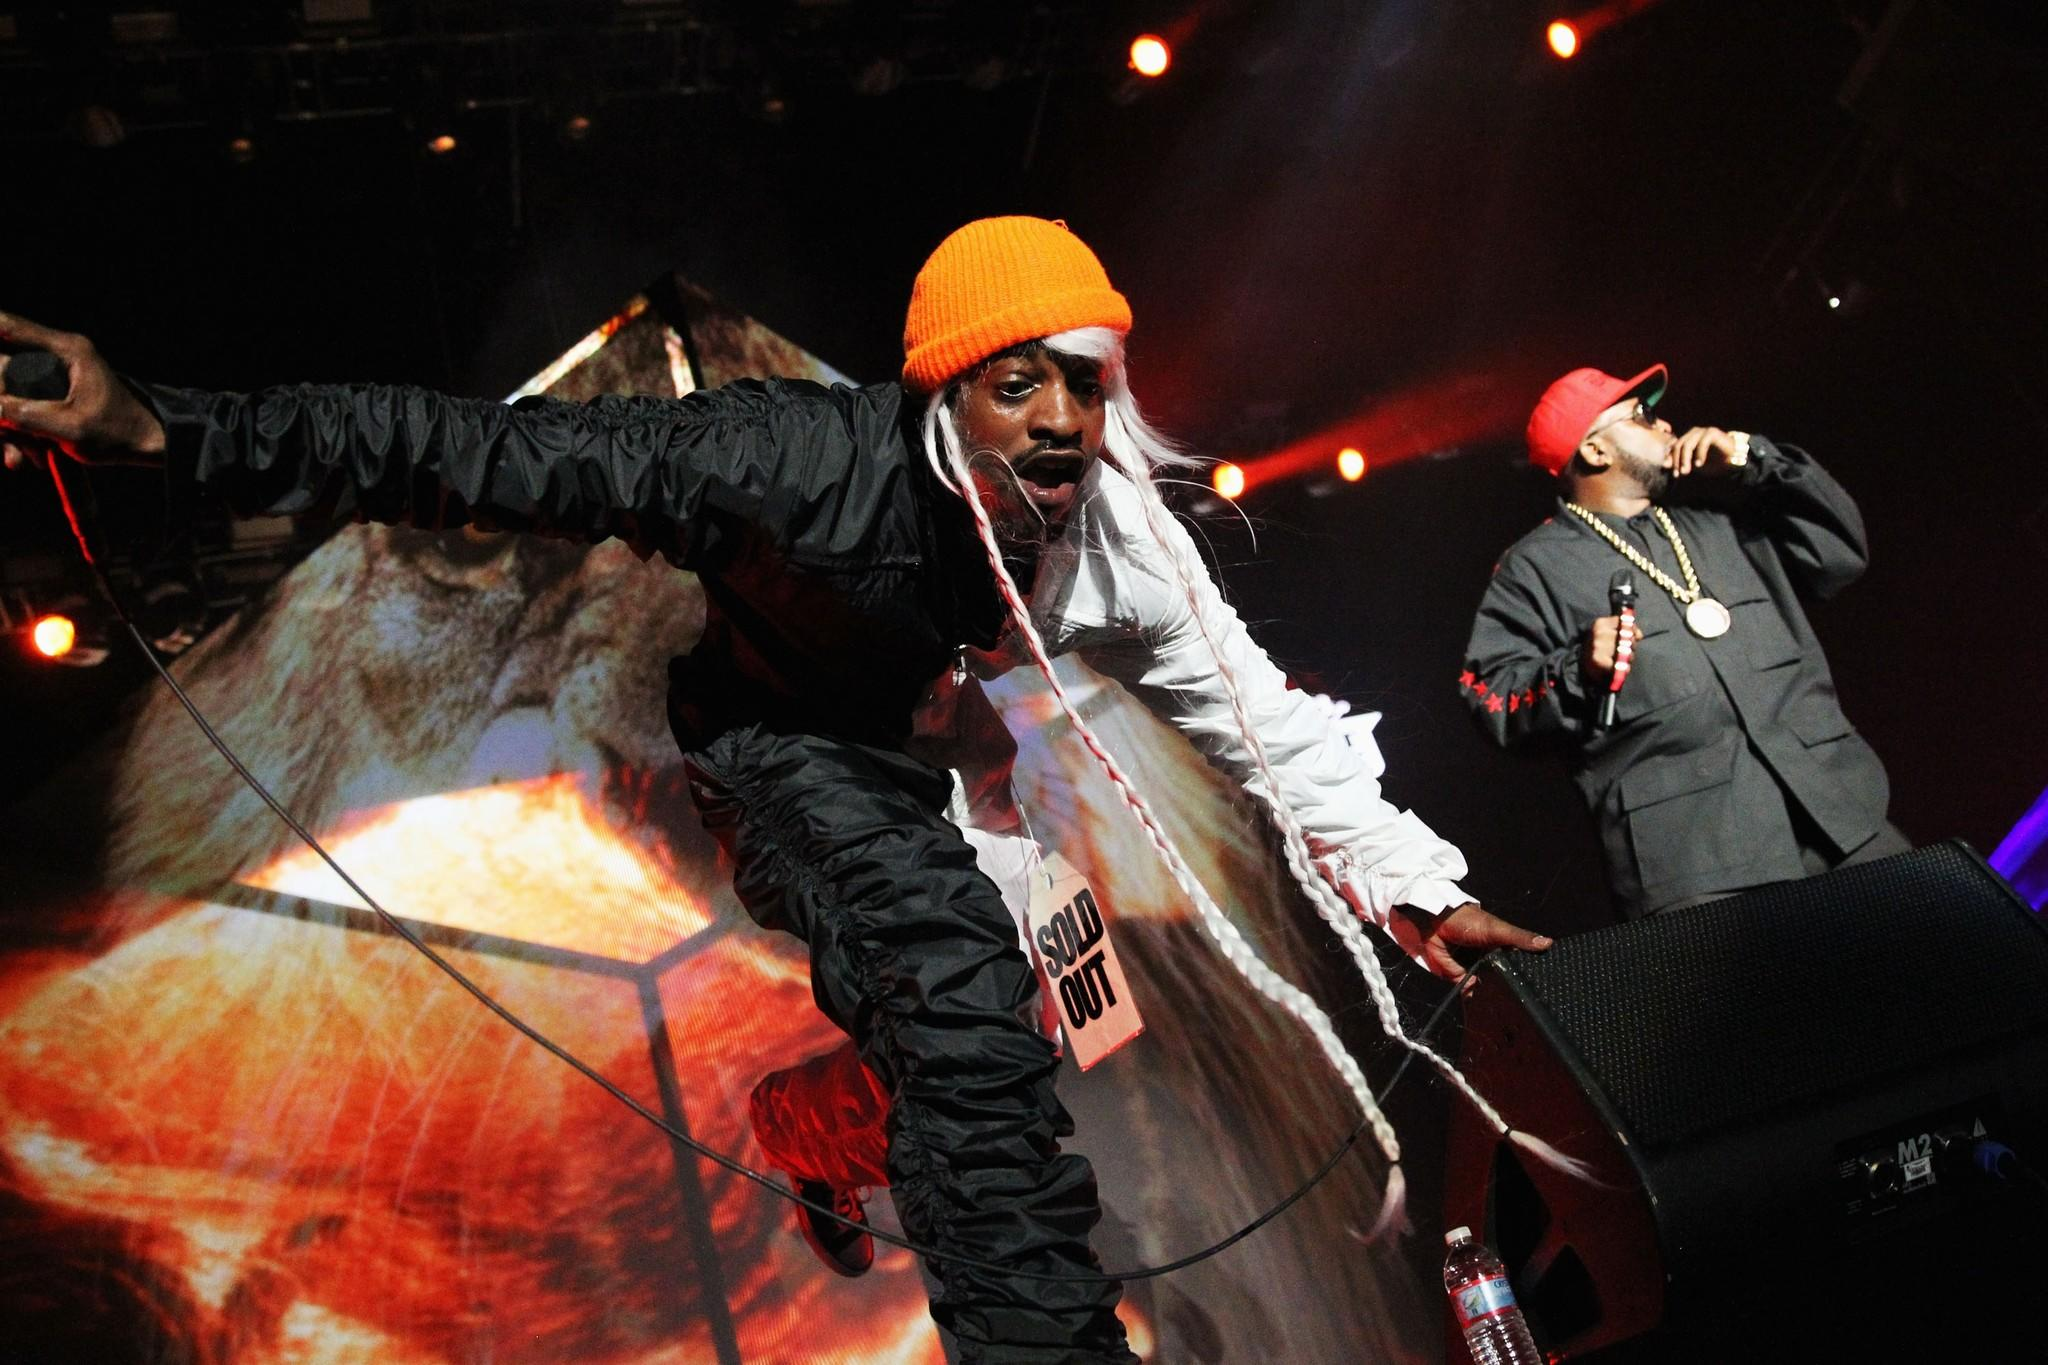 OutKast's Andre 3000, left, and Big Boi at the 2014 Coachella Valley Music and Arts Festival on April 18. The two will perform at the upcoming BottleRock in Napa, Calif.